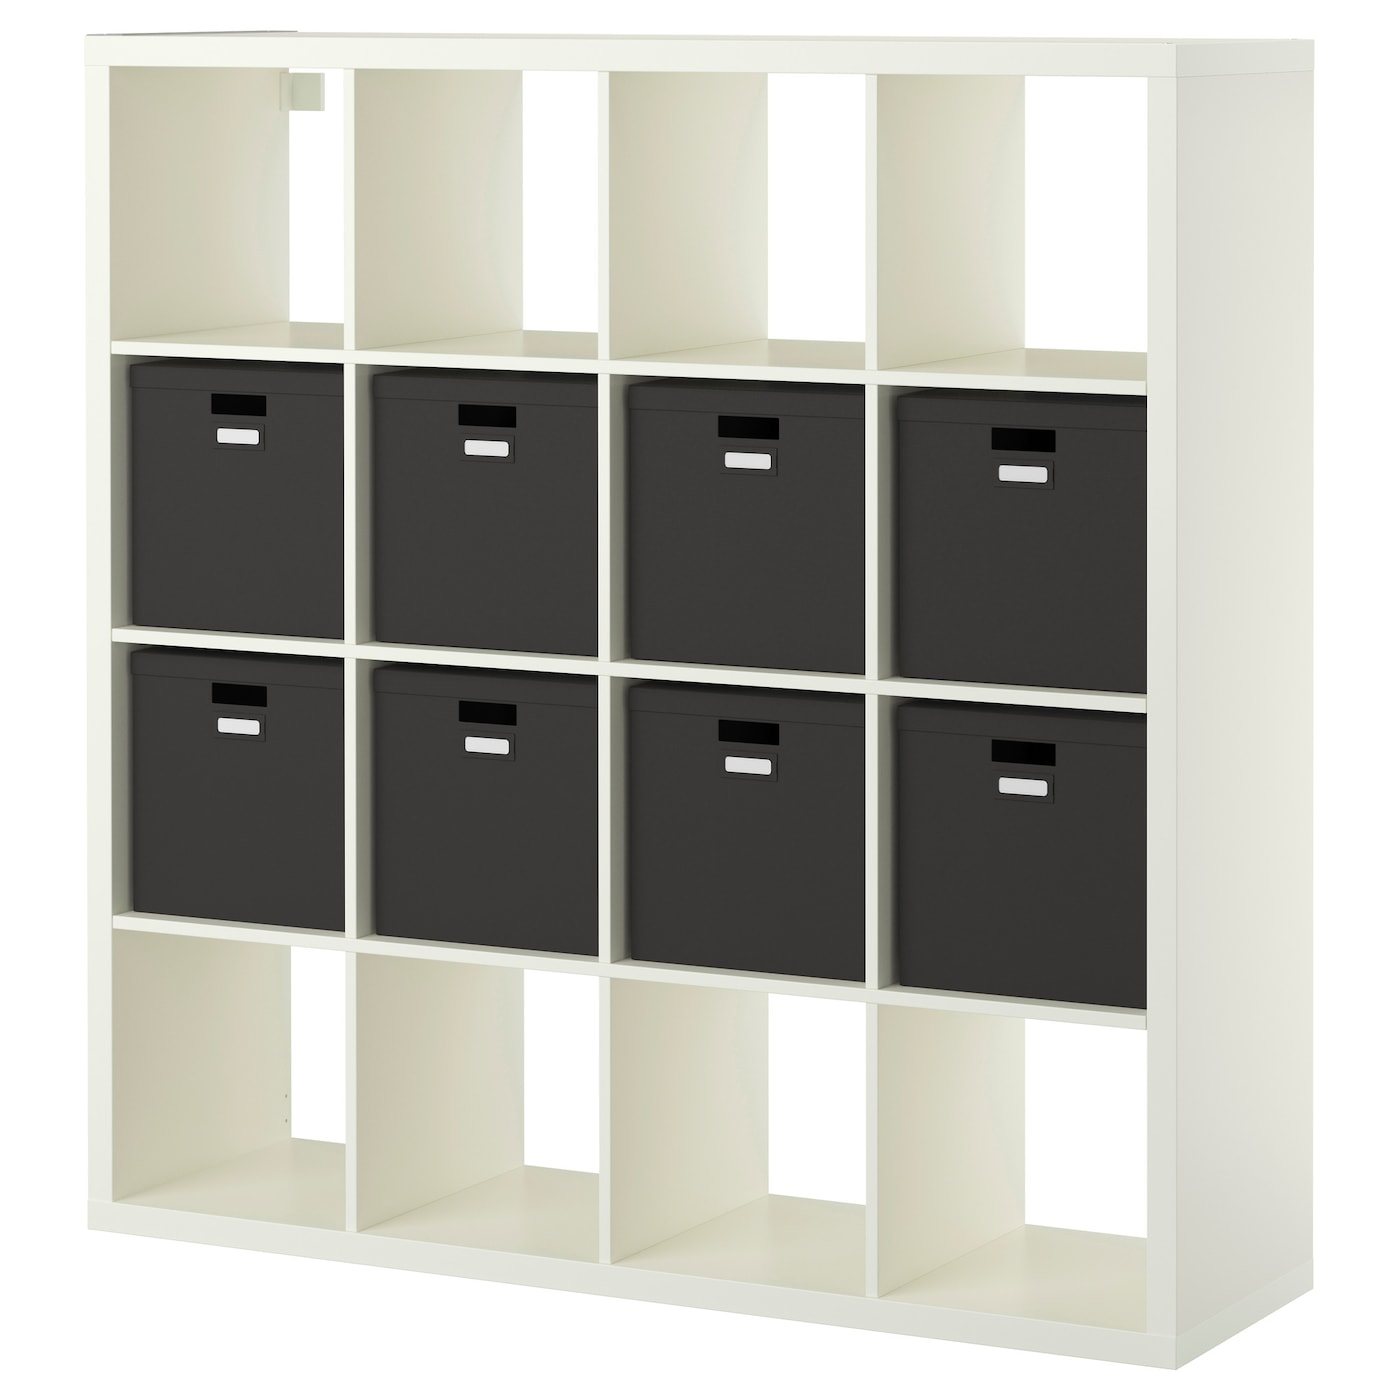 kallax shelving unit with 8 inserts white 147x147 cm ikea. Black Bedroom Furniture Sets. Home Design Ideas